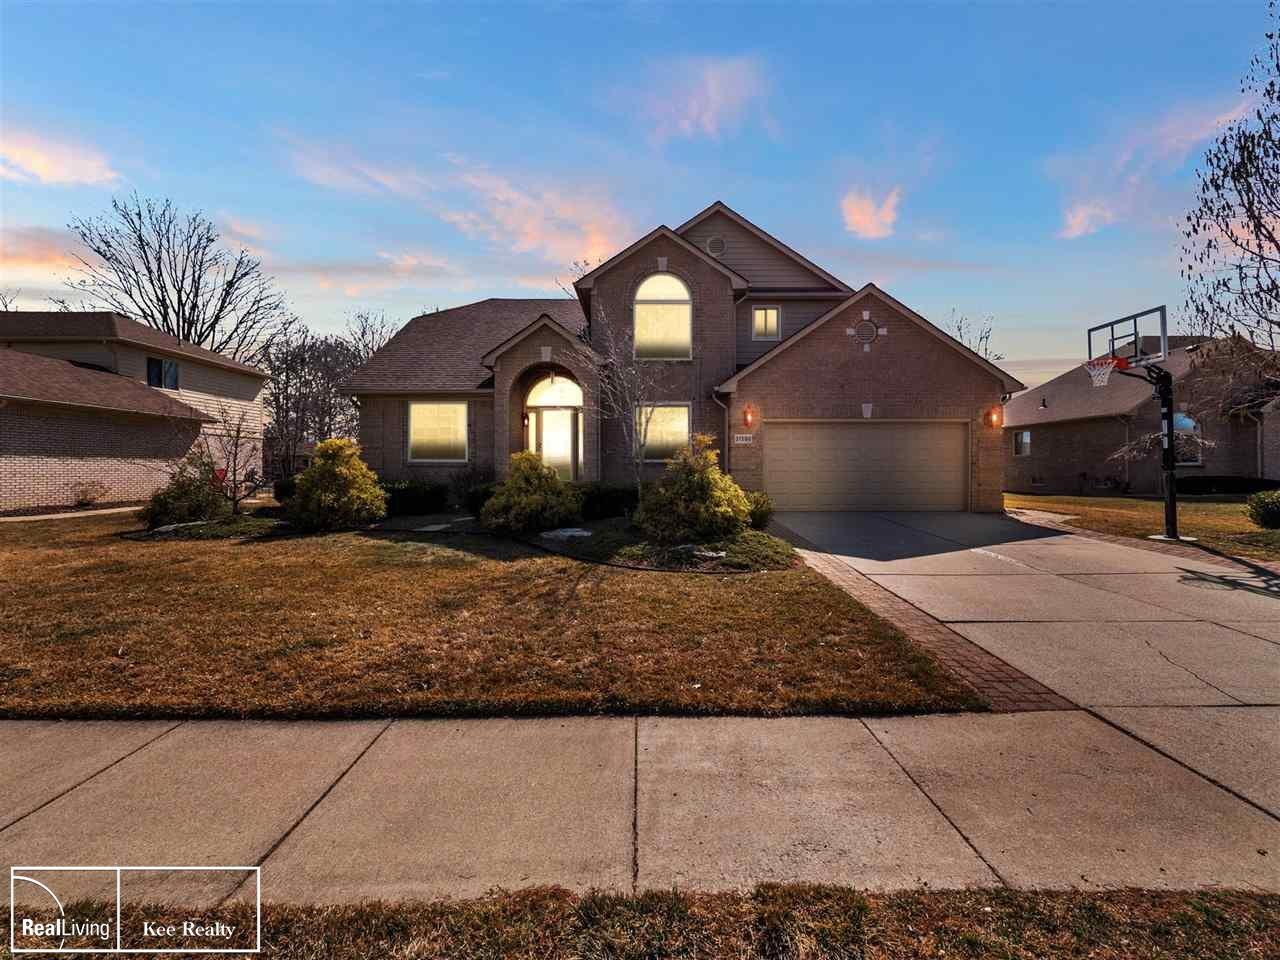 31598 Winter Creek Dr, Chesterfield, Michigan 48047, 3 Bedrooms Bedrooms, ,3 BathroomsBathrooms,Single Family,For Sale,31598 Winter Creek Dr,2,50037038